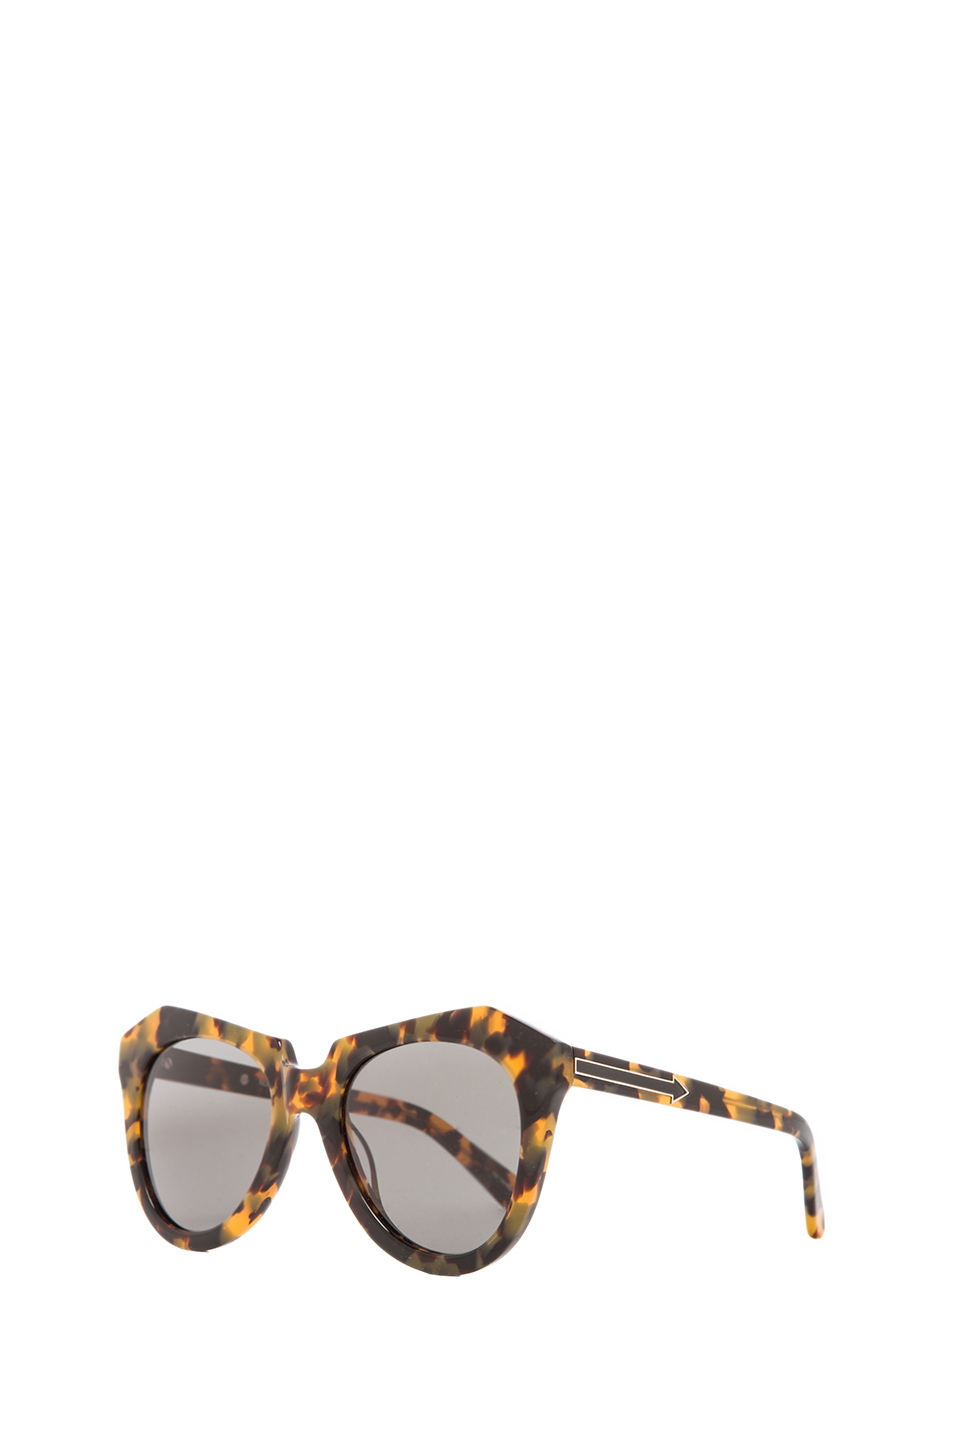 19c1b703b40 Karen Walker gafas sol number one en Crazy Tort